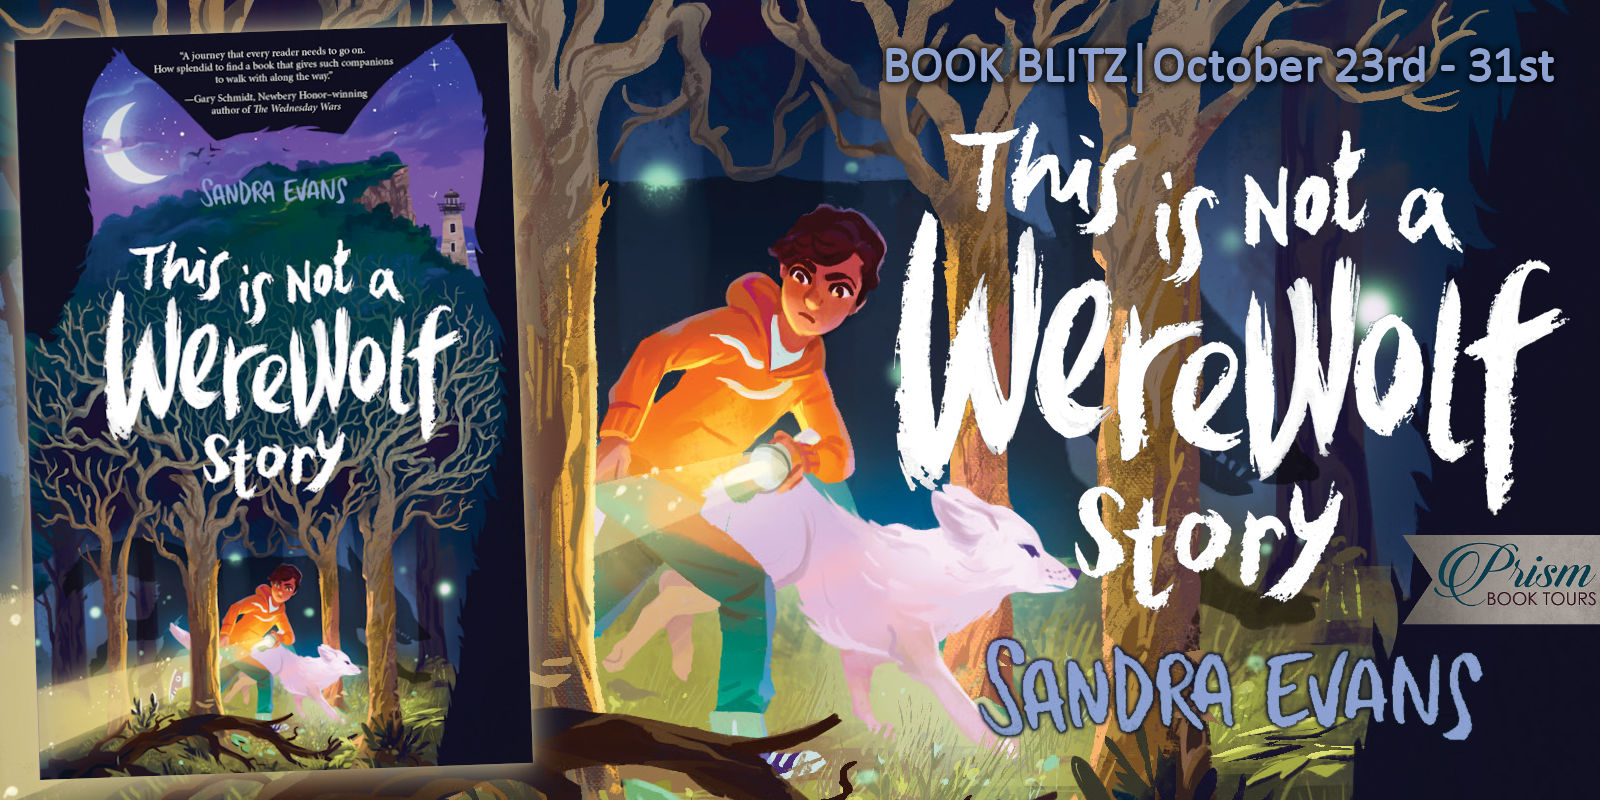 We're spotlighting THIS IS NOT A WEREWOLF STORY by SANDRA EVANS!